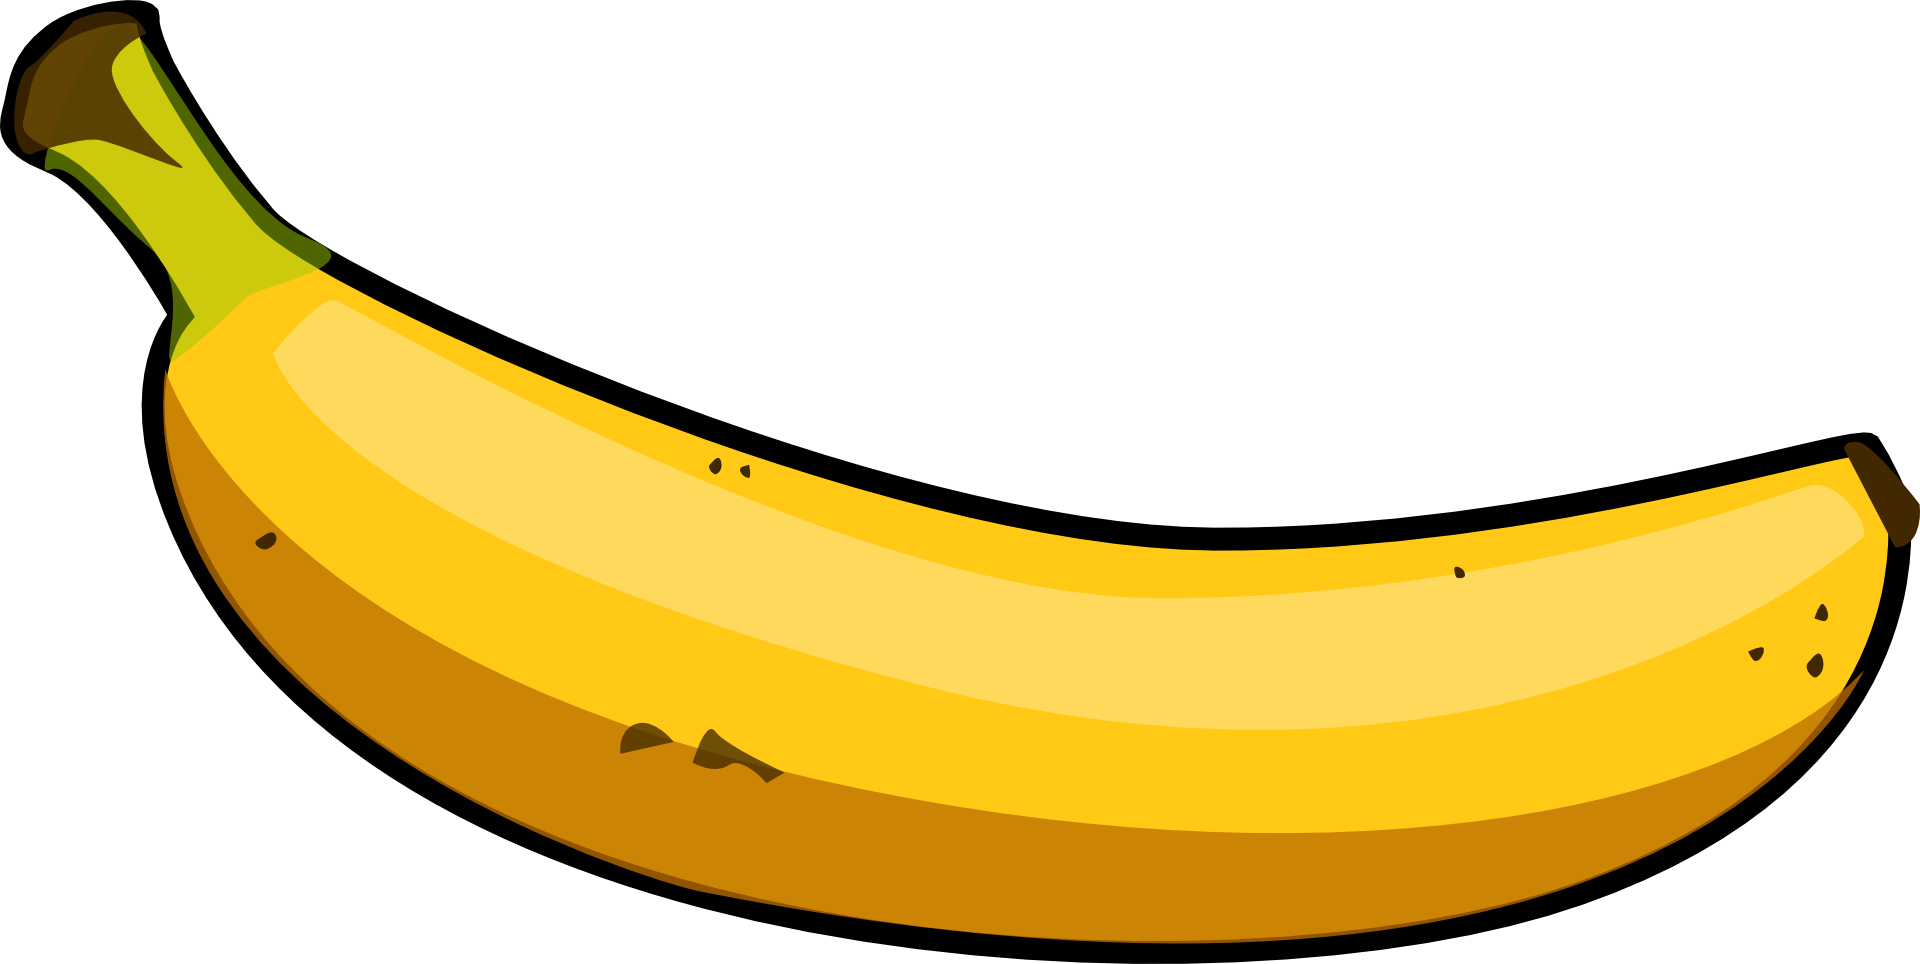 Fruit Banana Images In Hd on Banana Clip Art